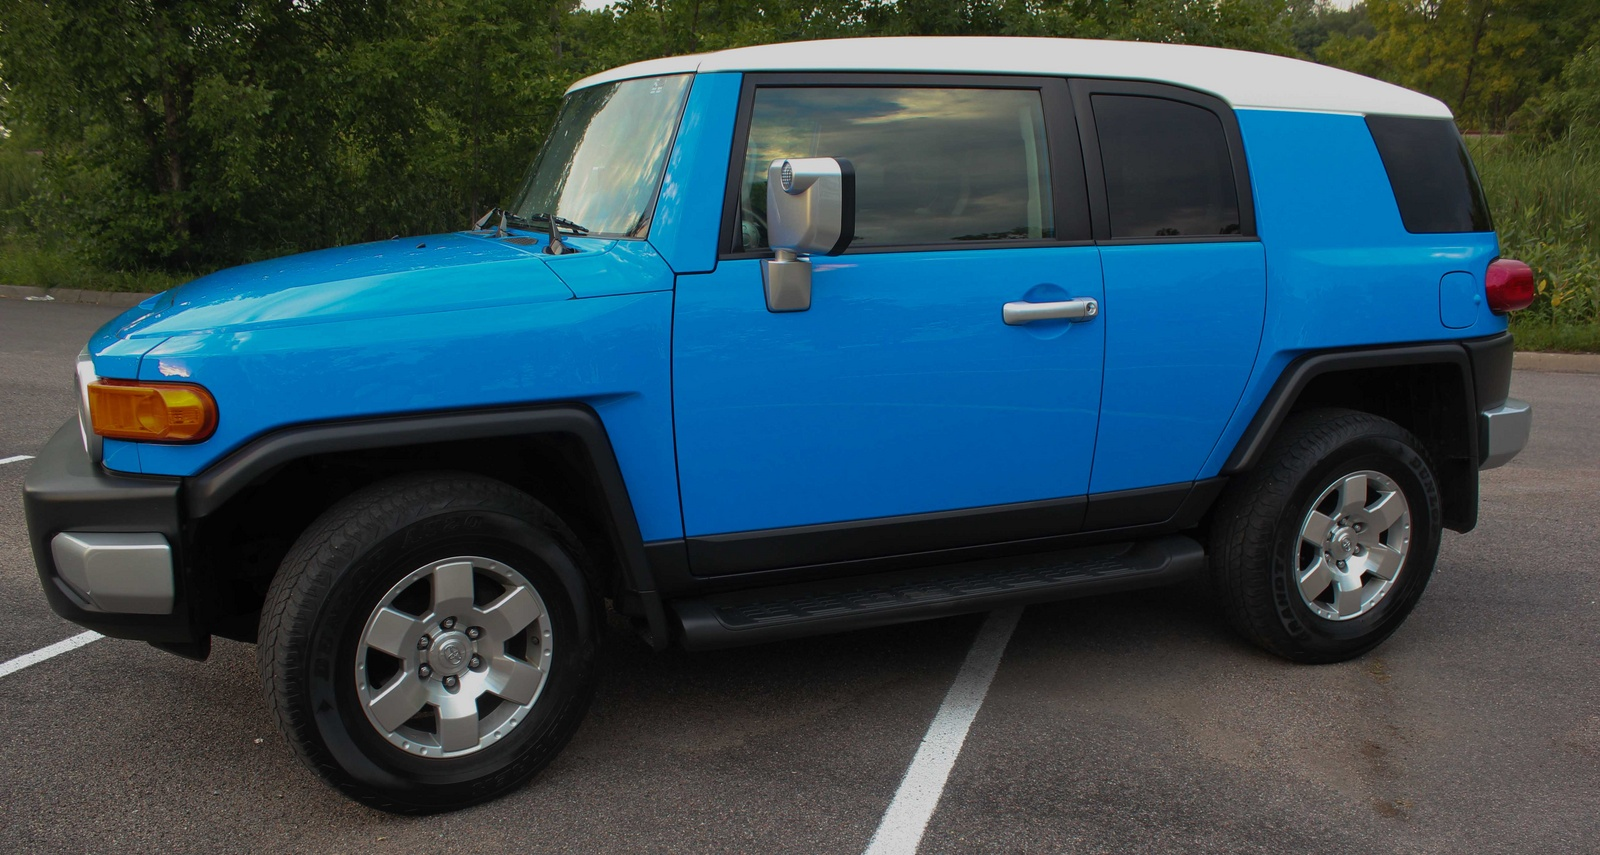 used toyota fj cruiser for sale minneapolis mn cargurus. Black Bedroom Furniture Sets. Home Design Ideas